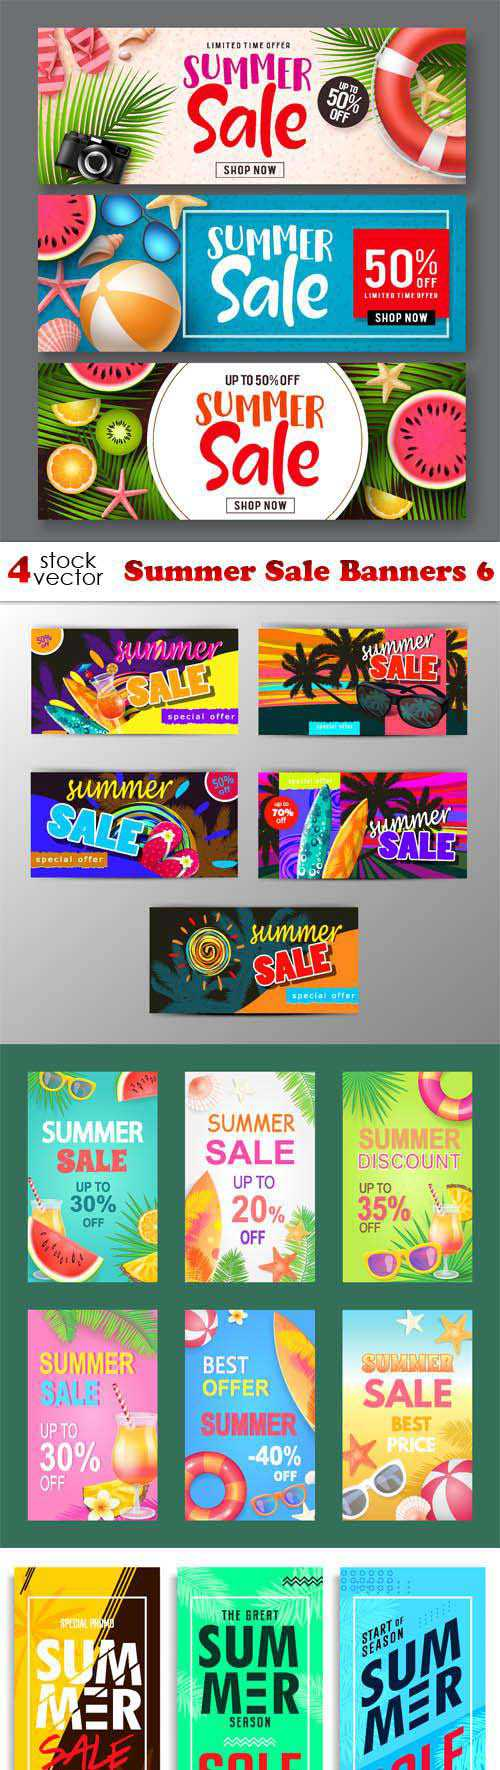 Summer Sale Banners 6